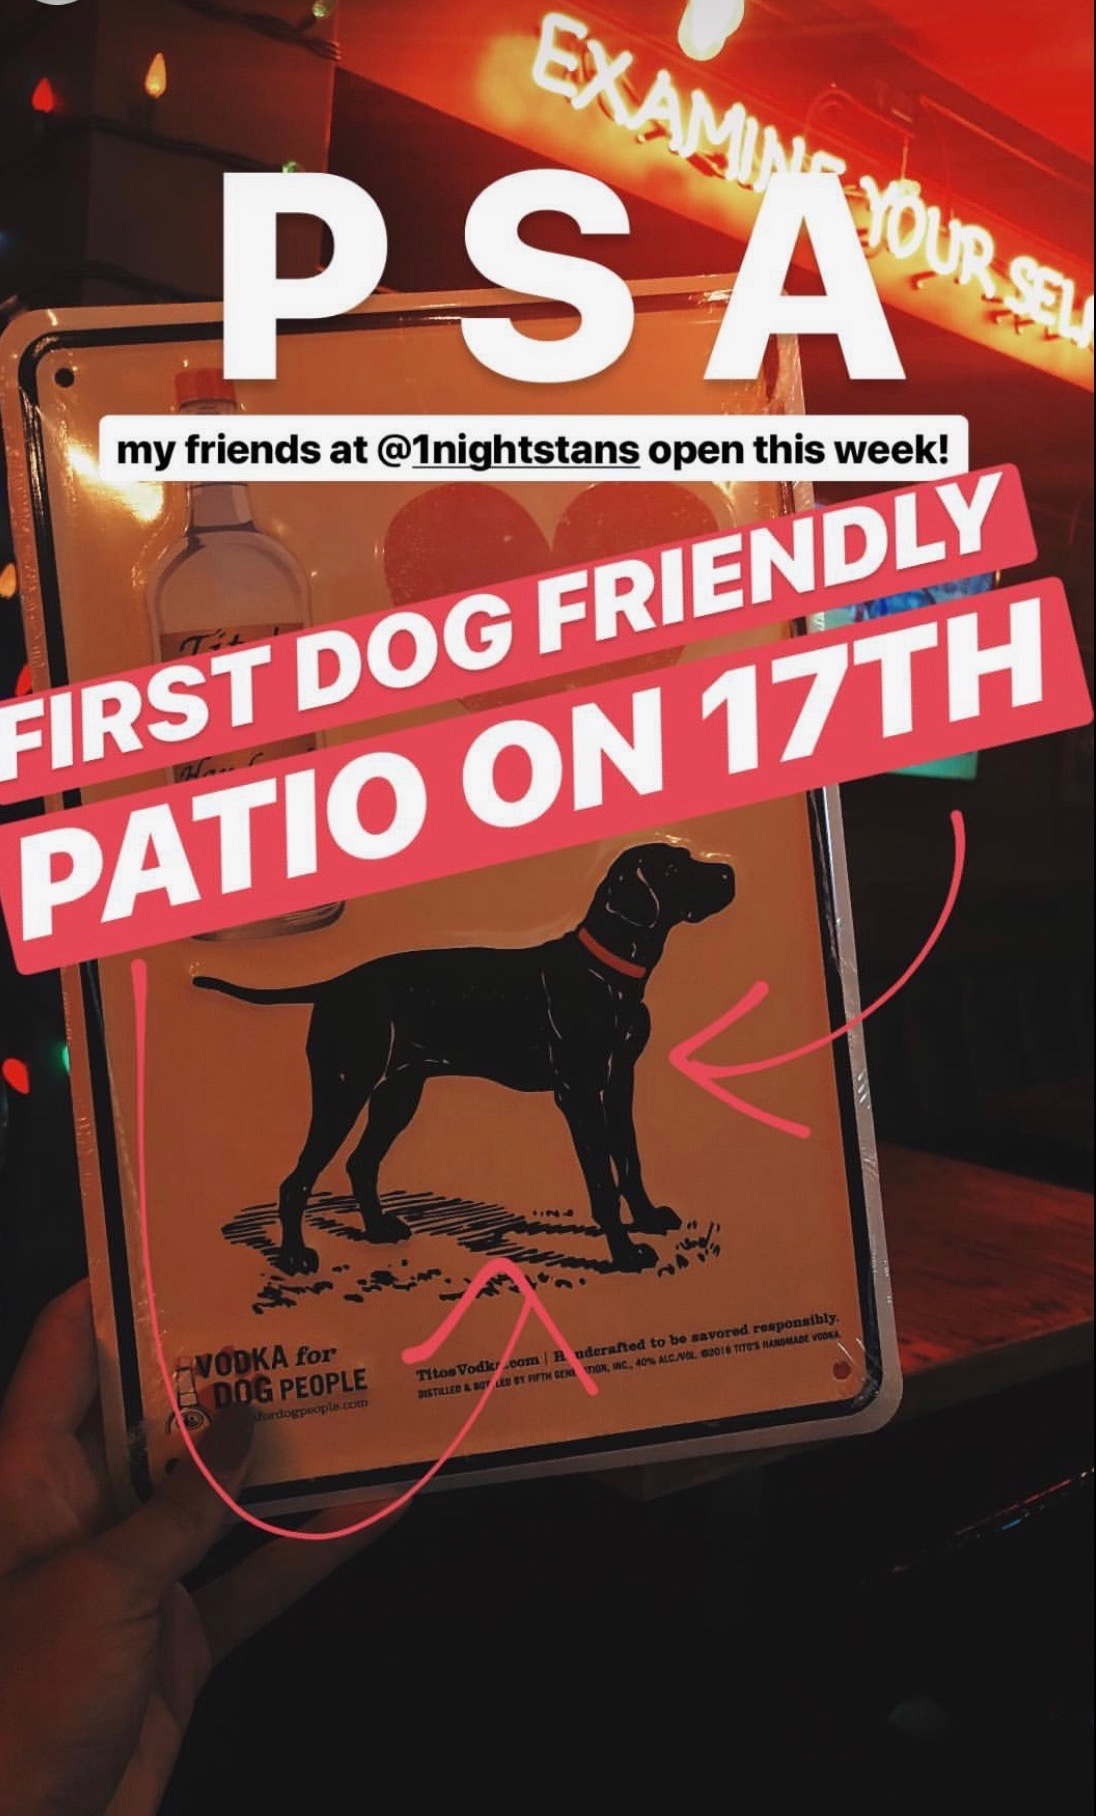 One Night Stan's Dog-Friendly Patio